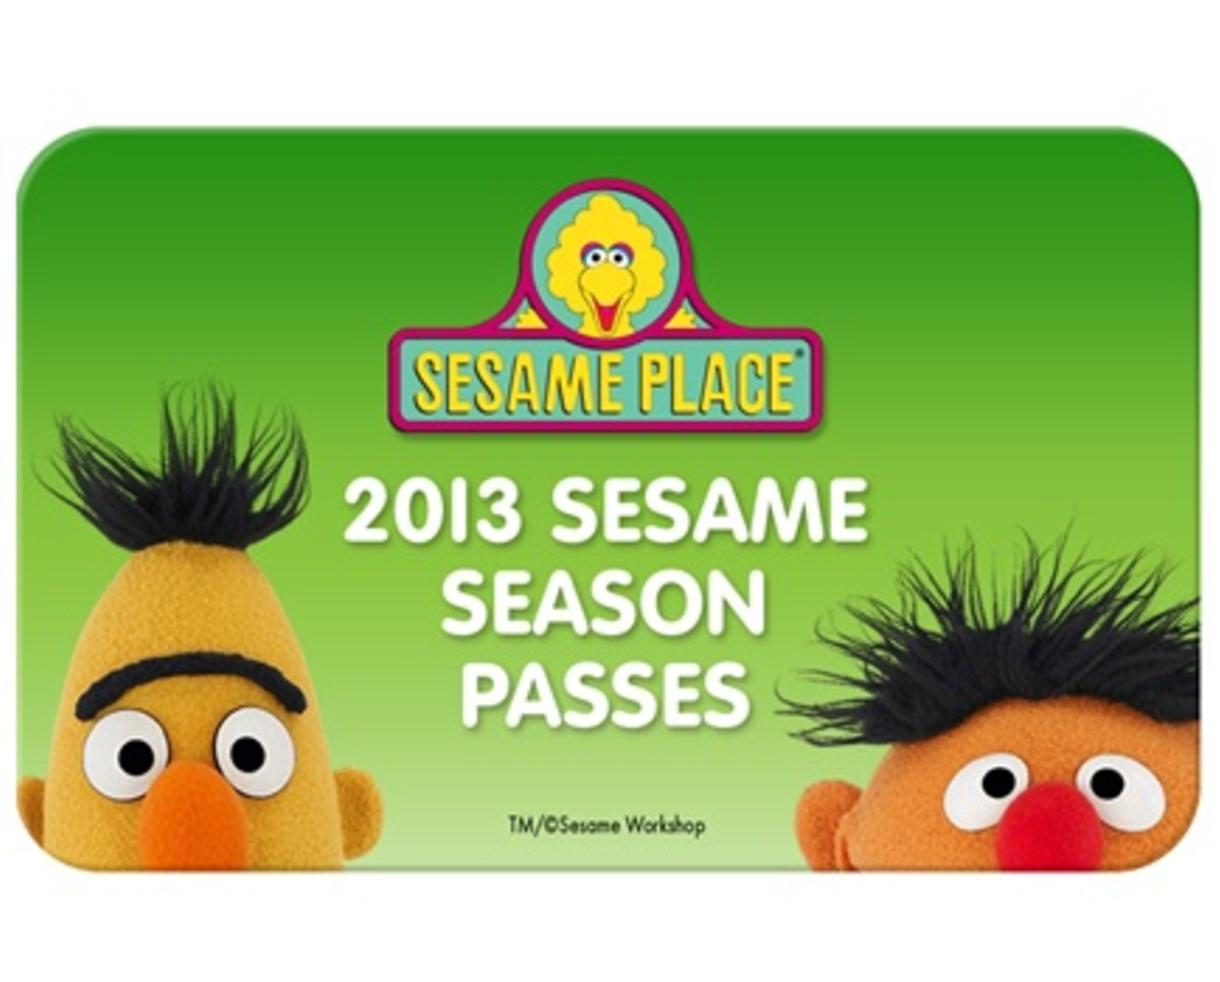 Save 20% on Sesame Place Season Passes!